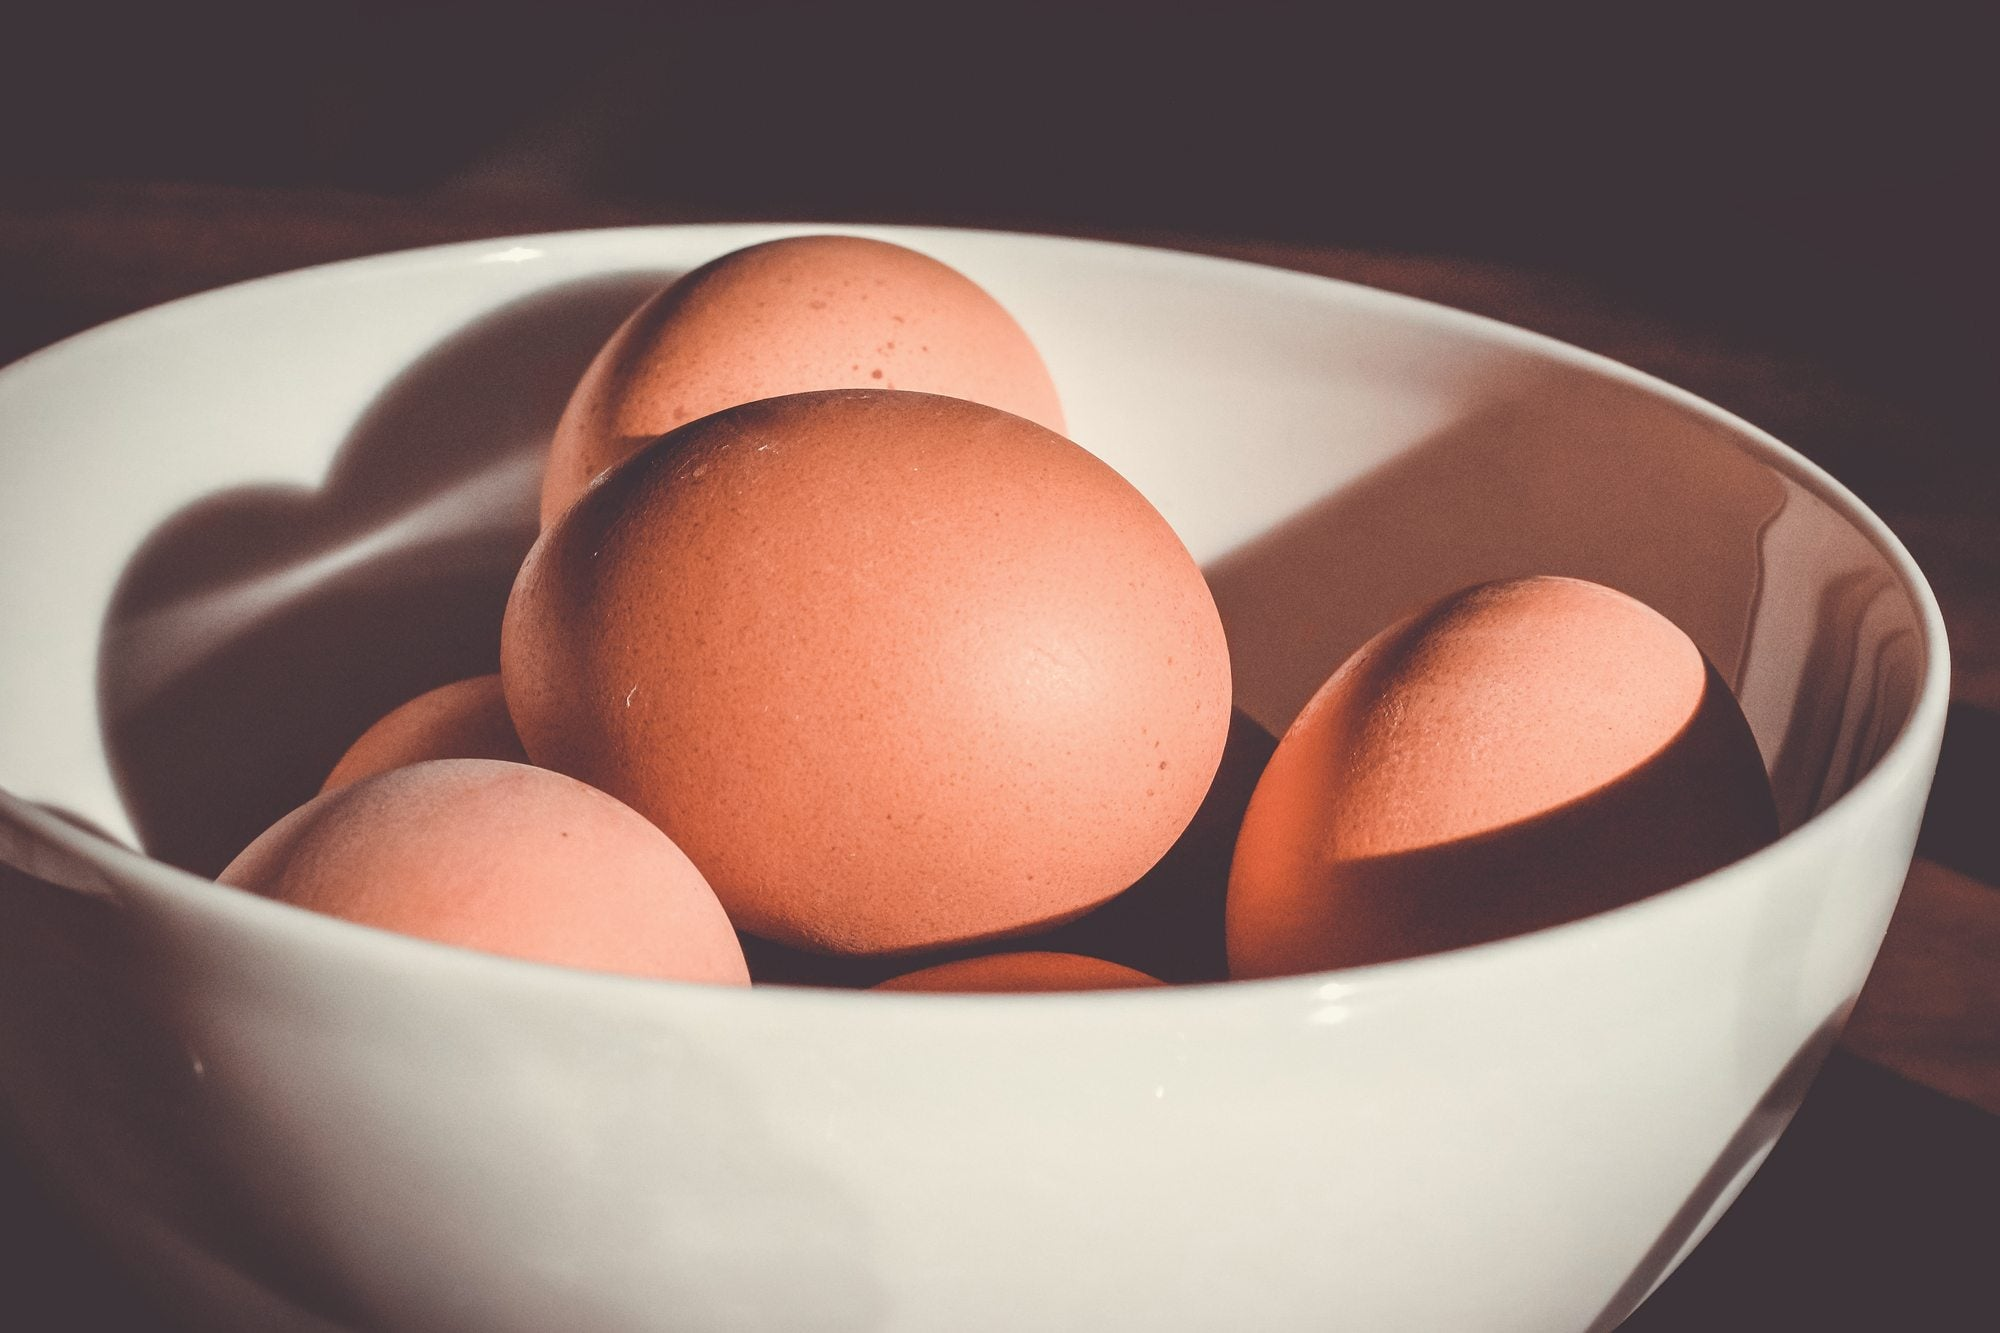 low energy can be caused by low b12 found in animal products like eggs